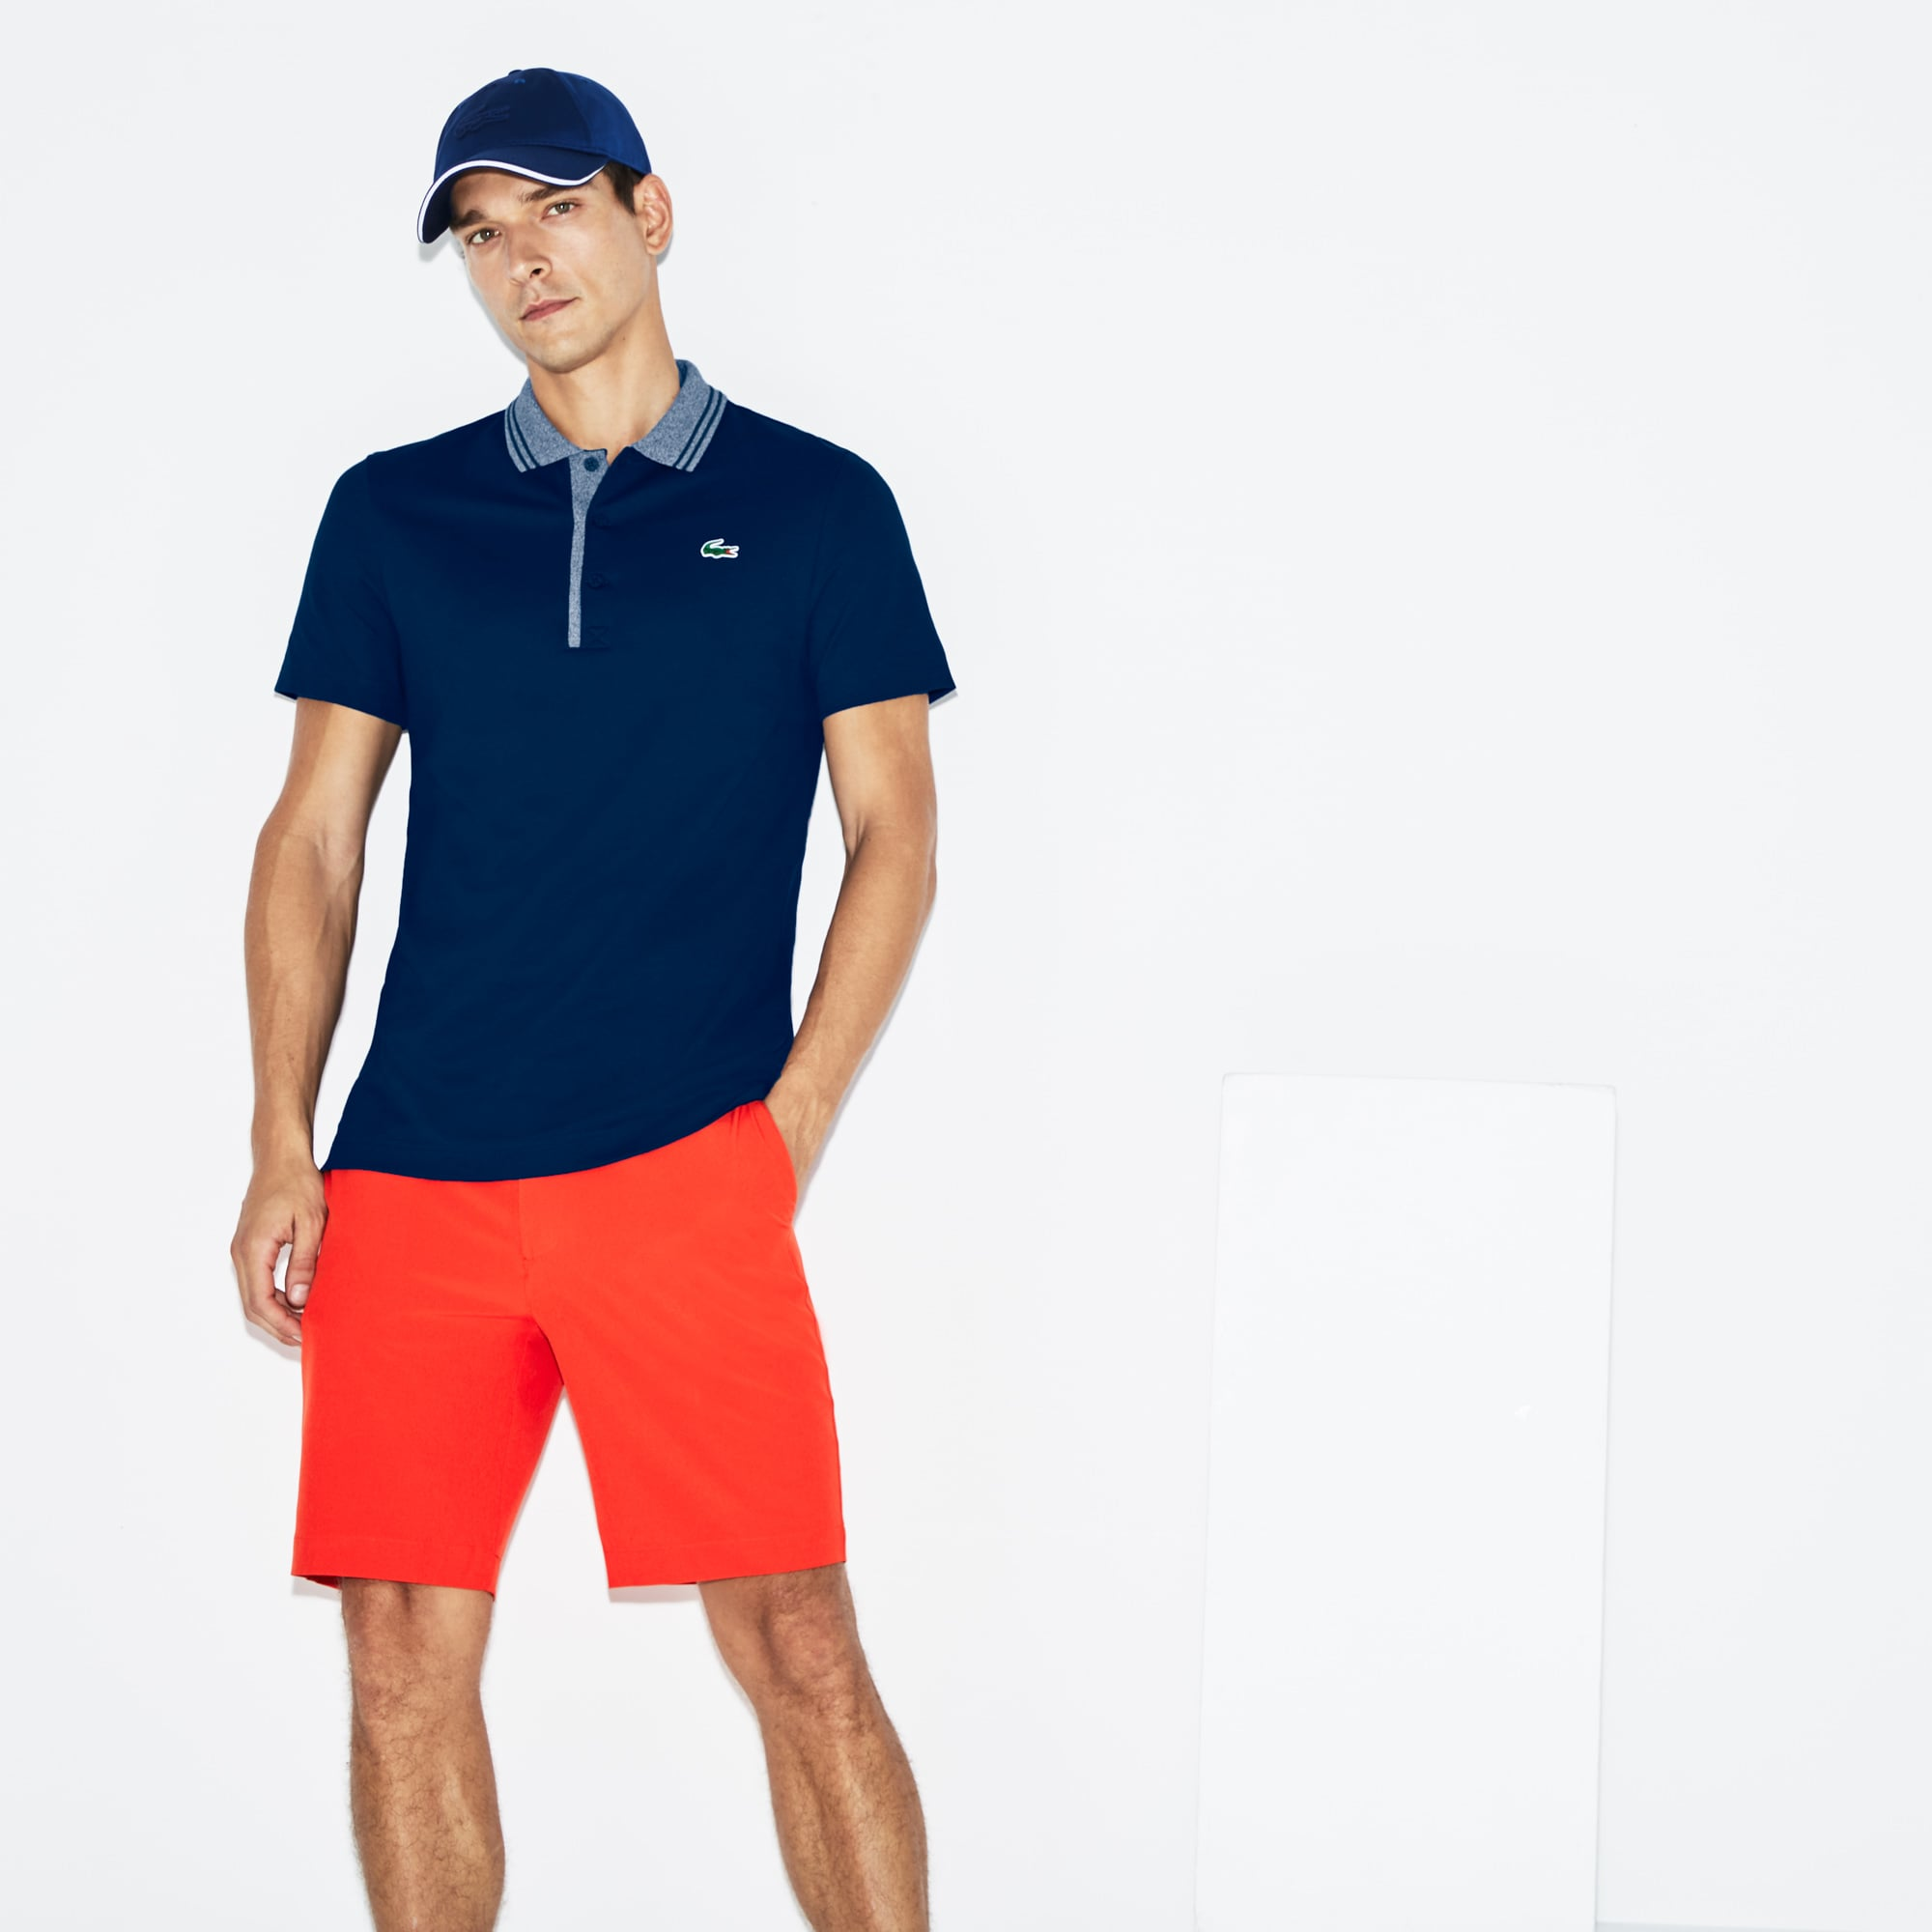 Men's SPORT Jacquard Accents Petit Piqué Golf Polo